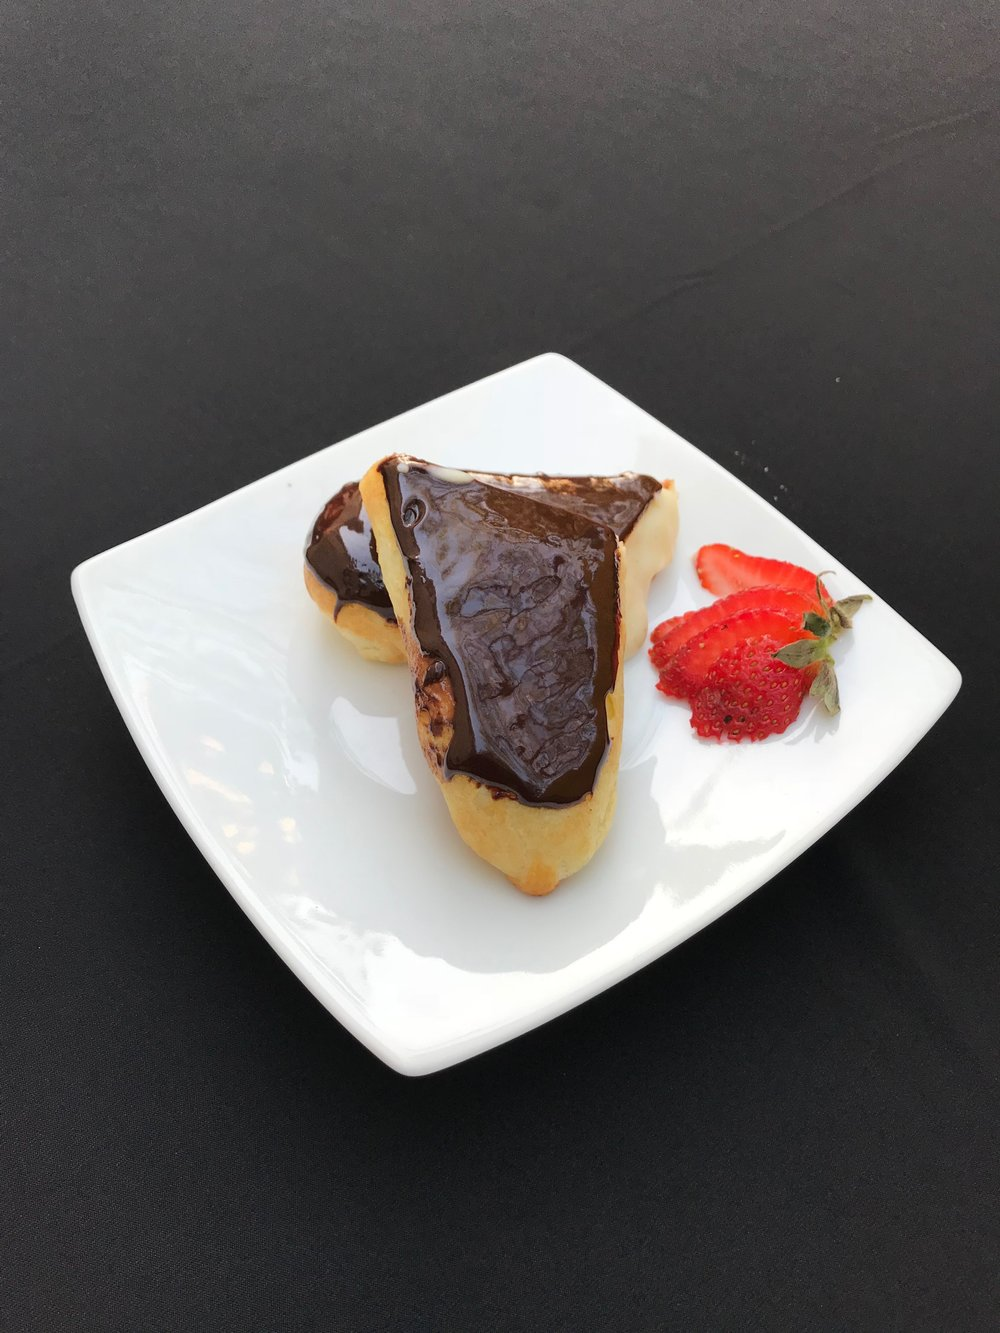 - EclairFlaky puff pastry stuffed with vanilla cream custard filling and chocolate ganache